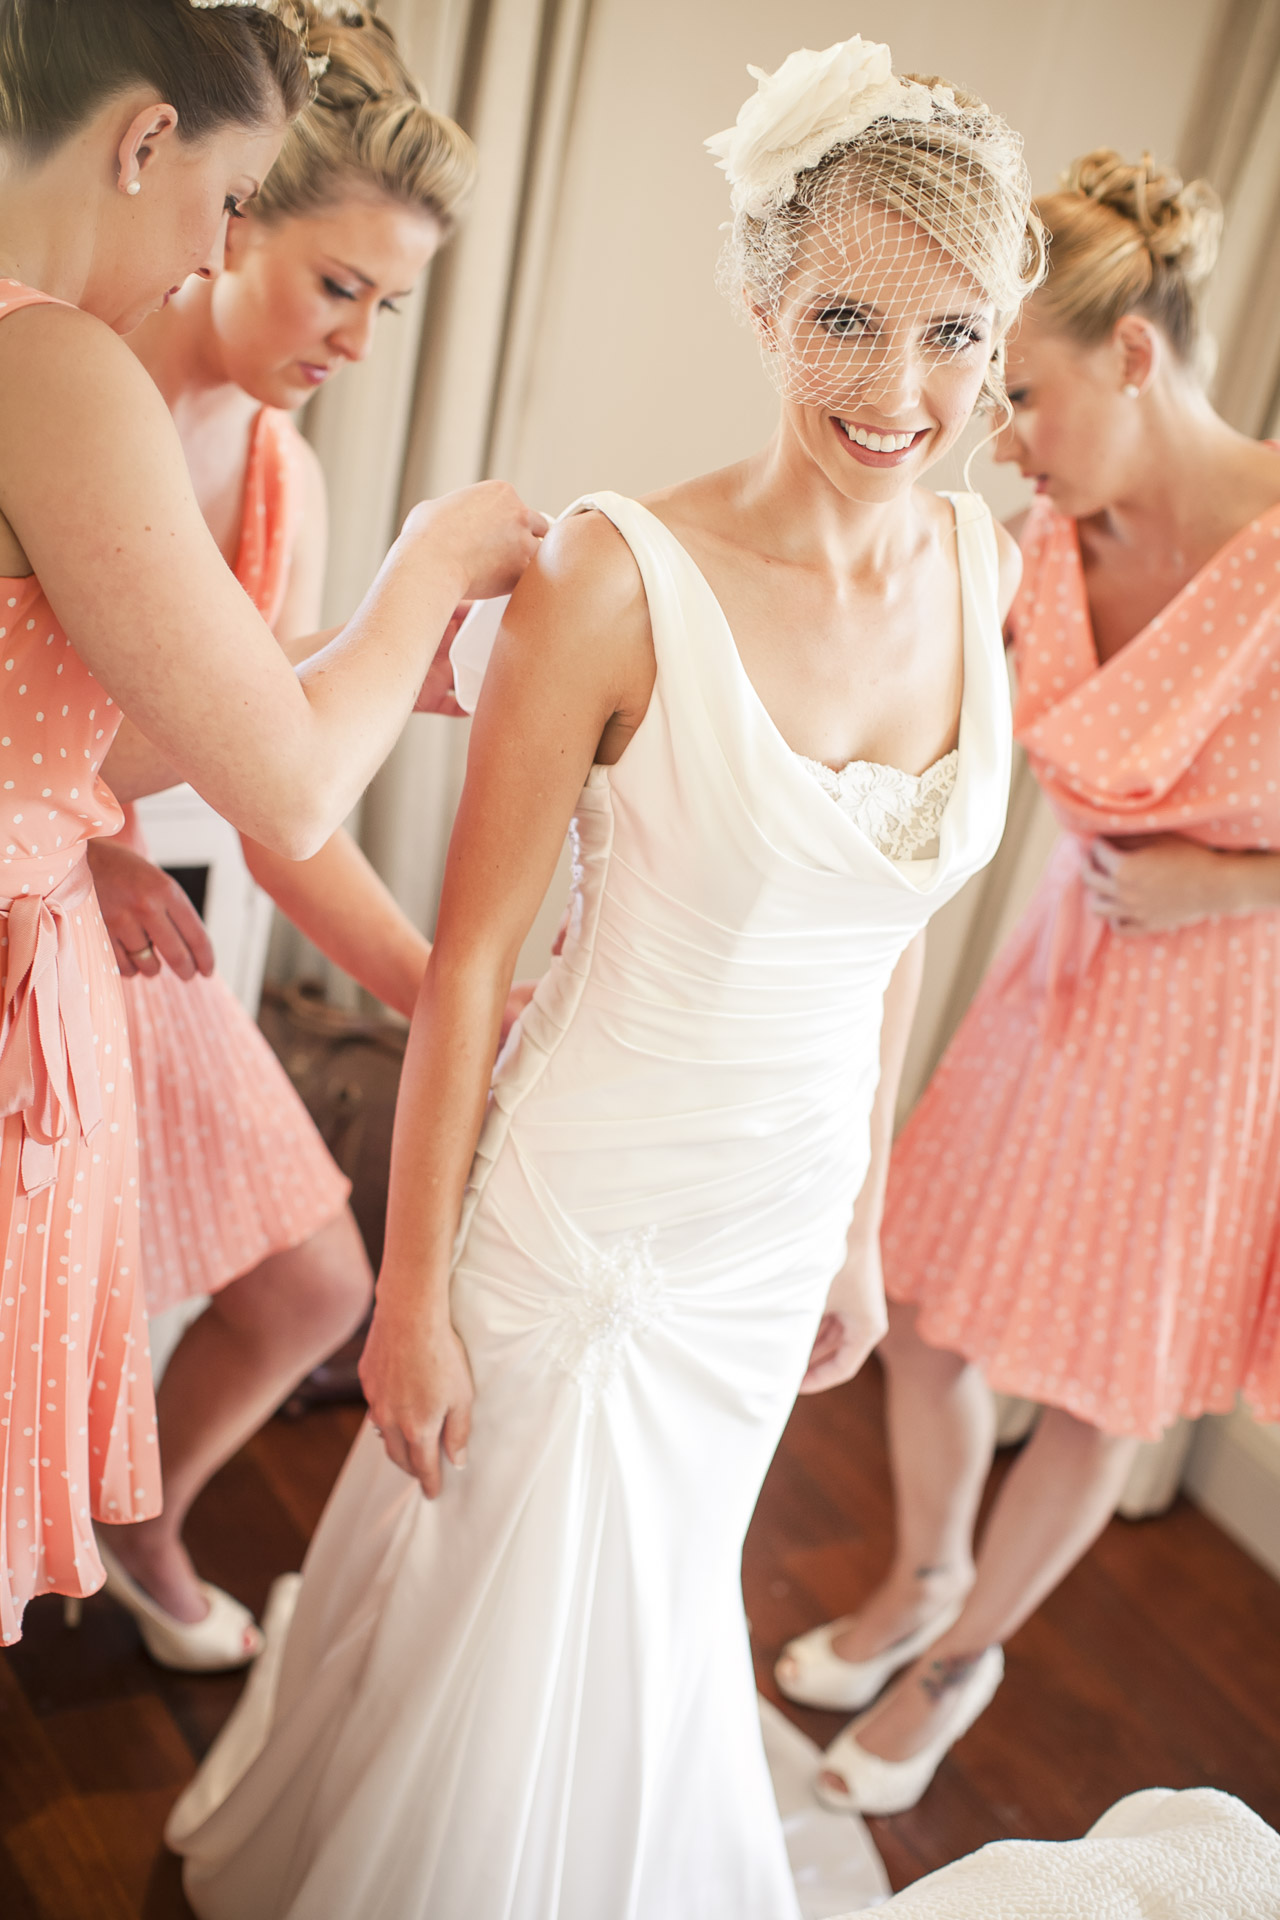 Hunter Valley_Weddings_Urban Wonder Creations-1-7